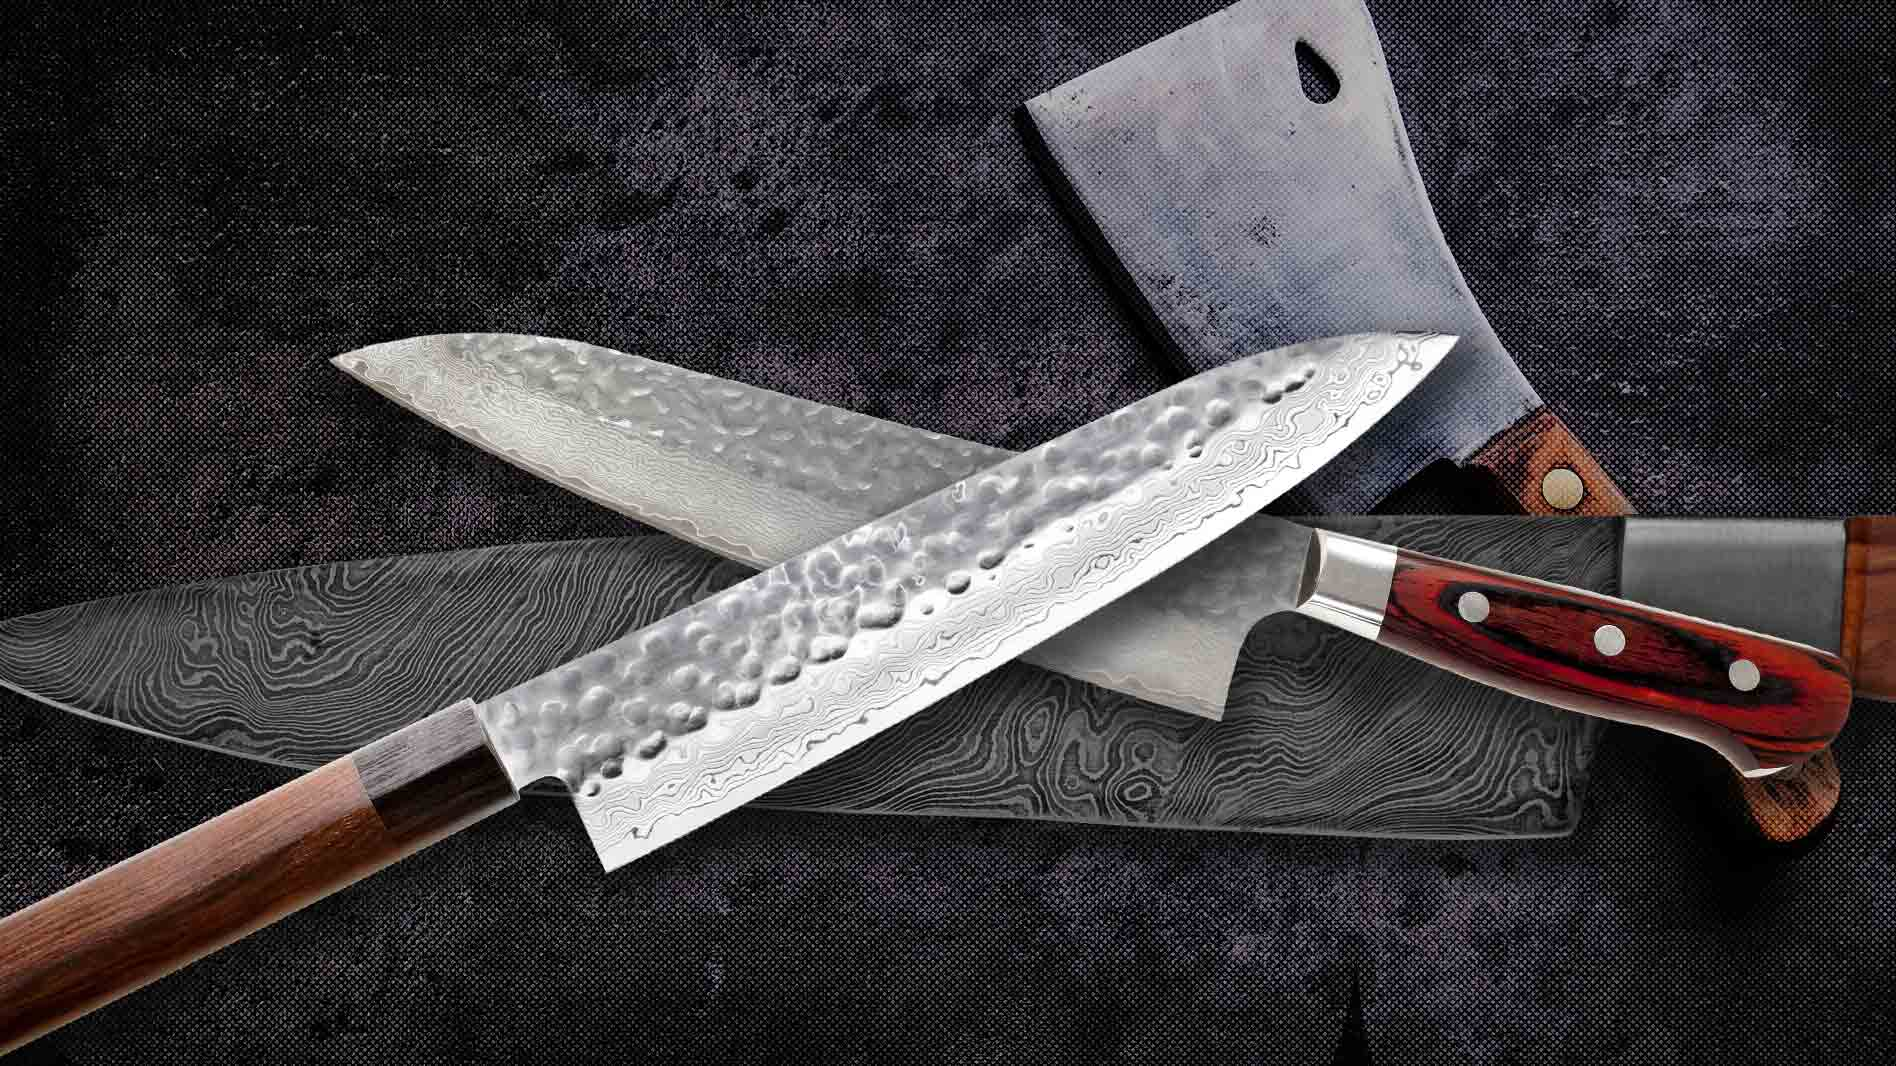 Knife experts reveal what you need to consider when buying a new knife